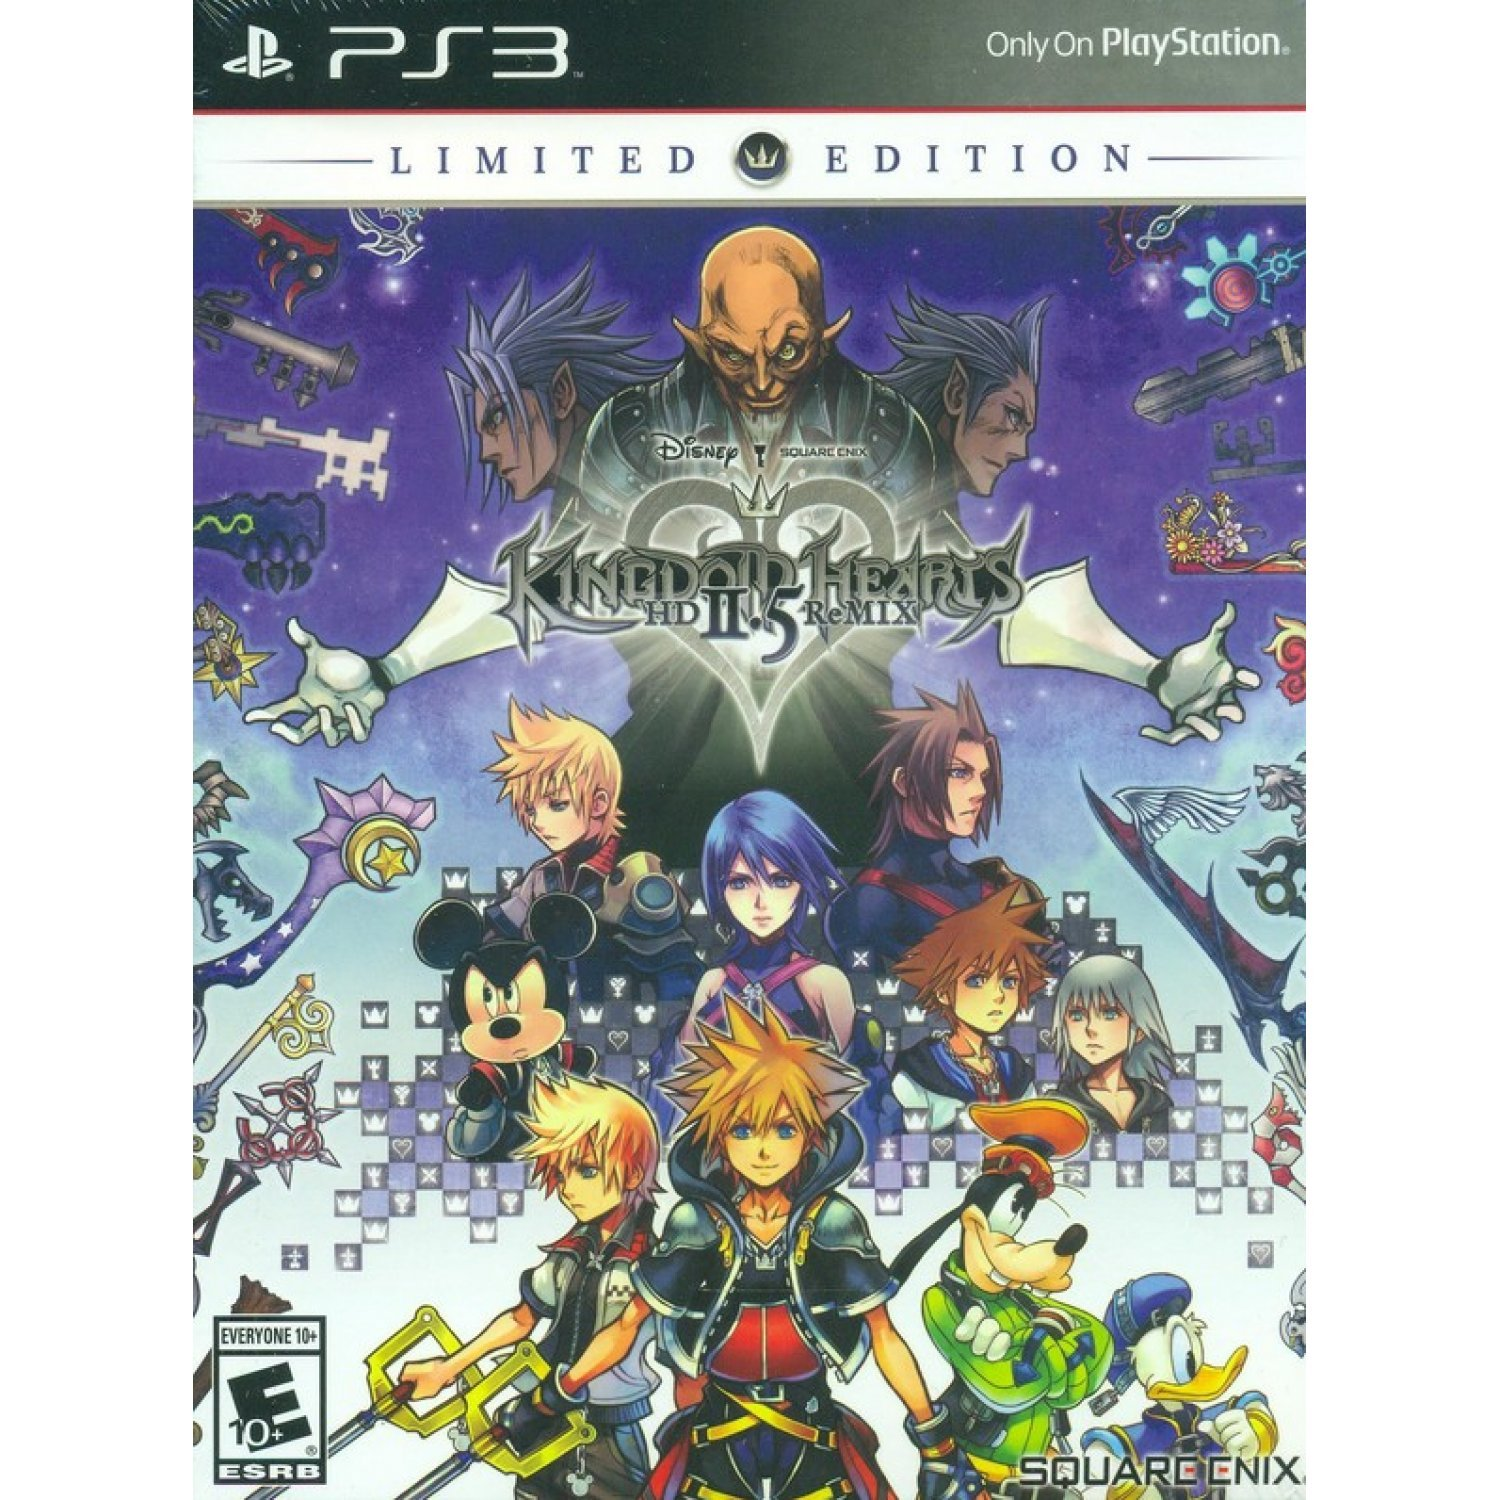 kingdom hearts 1.5 and 2.5 ps4 special edition